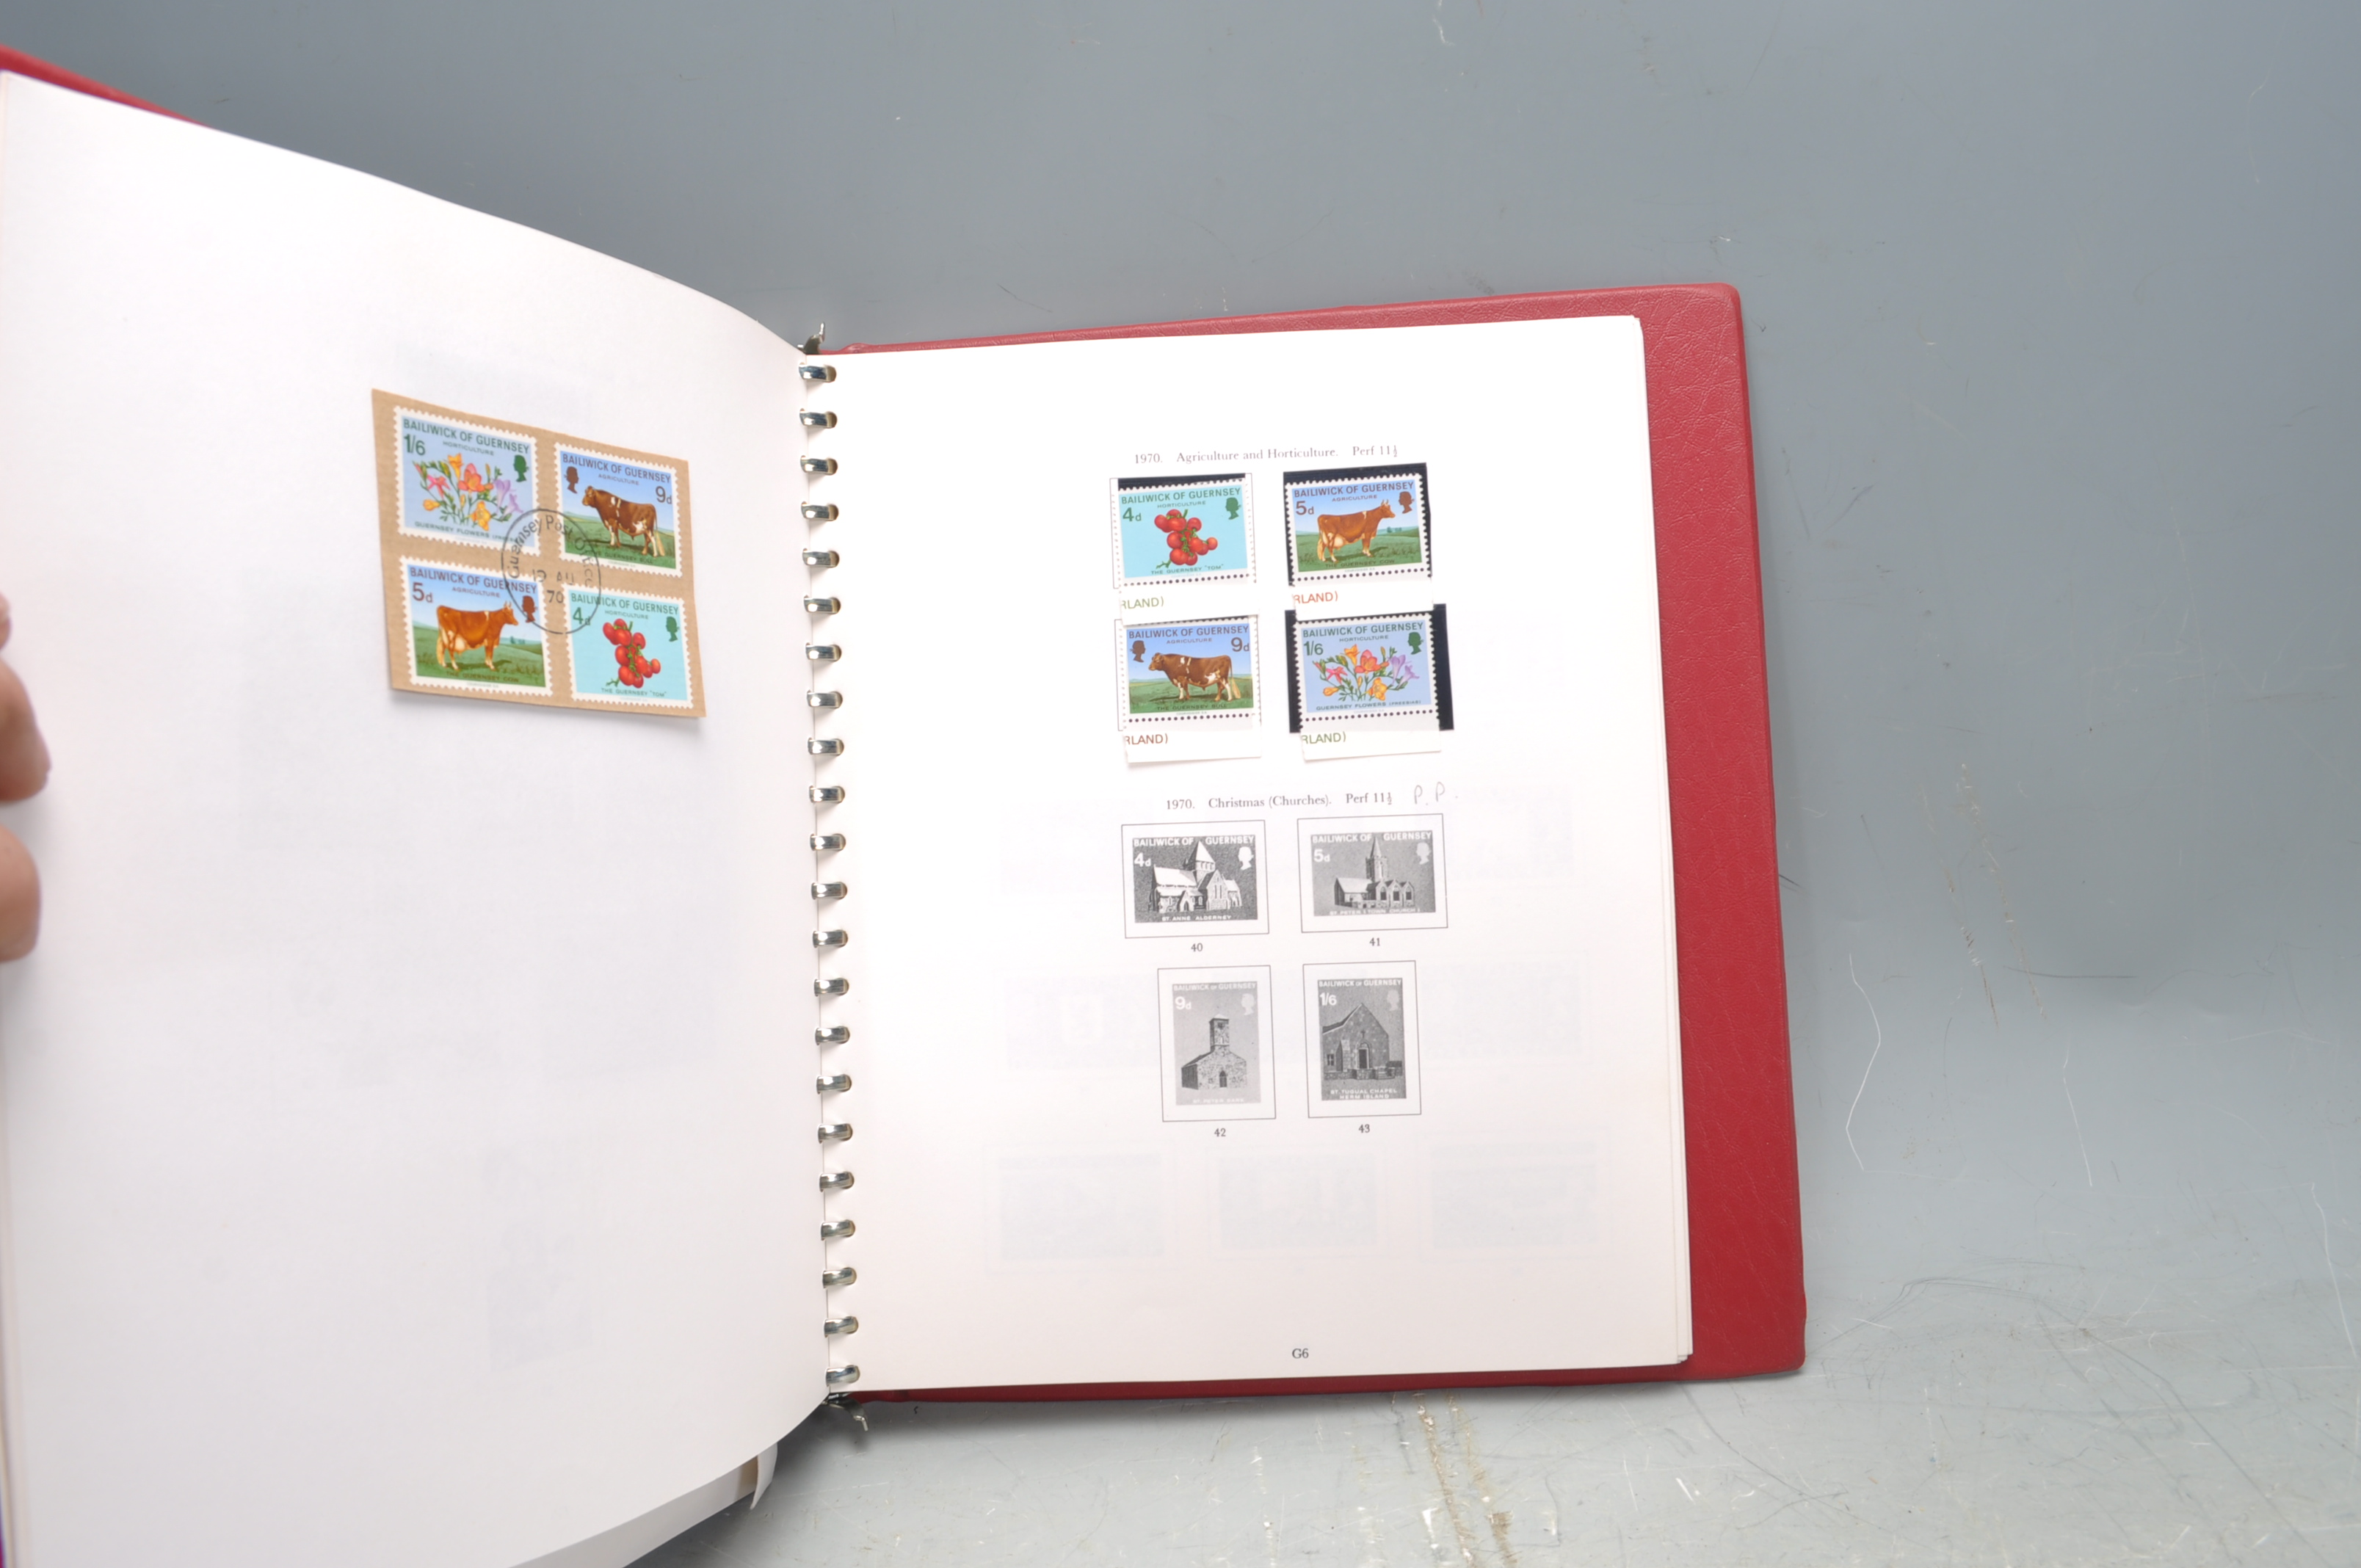 STAMPS - CHANNEL ISLANDS AND ISLE OF MAN - Image 13 of 13